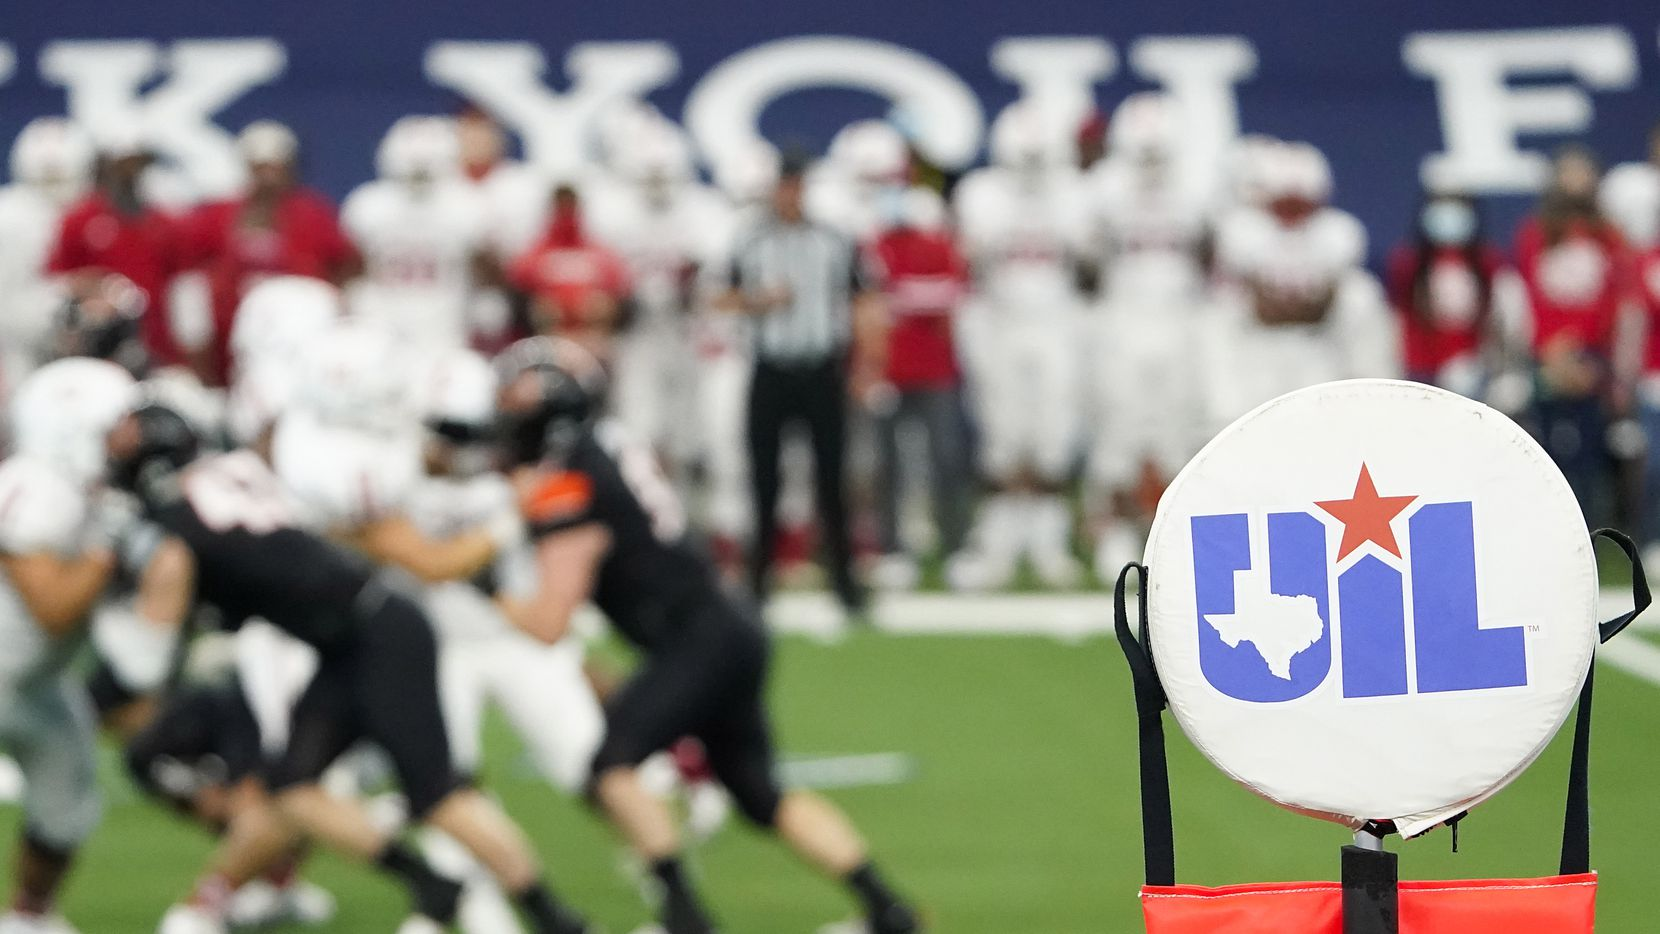 Aledo faces Crosby during the first half of the Class 5A Division II state football championship game at AT&T Stadium on Friday, Jan. 15, 2021, in Arlington.